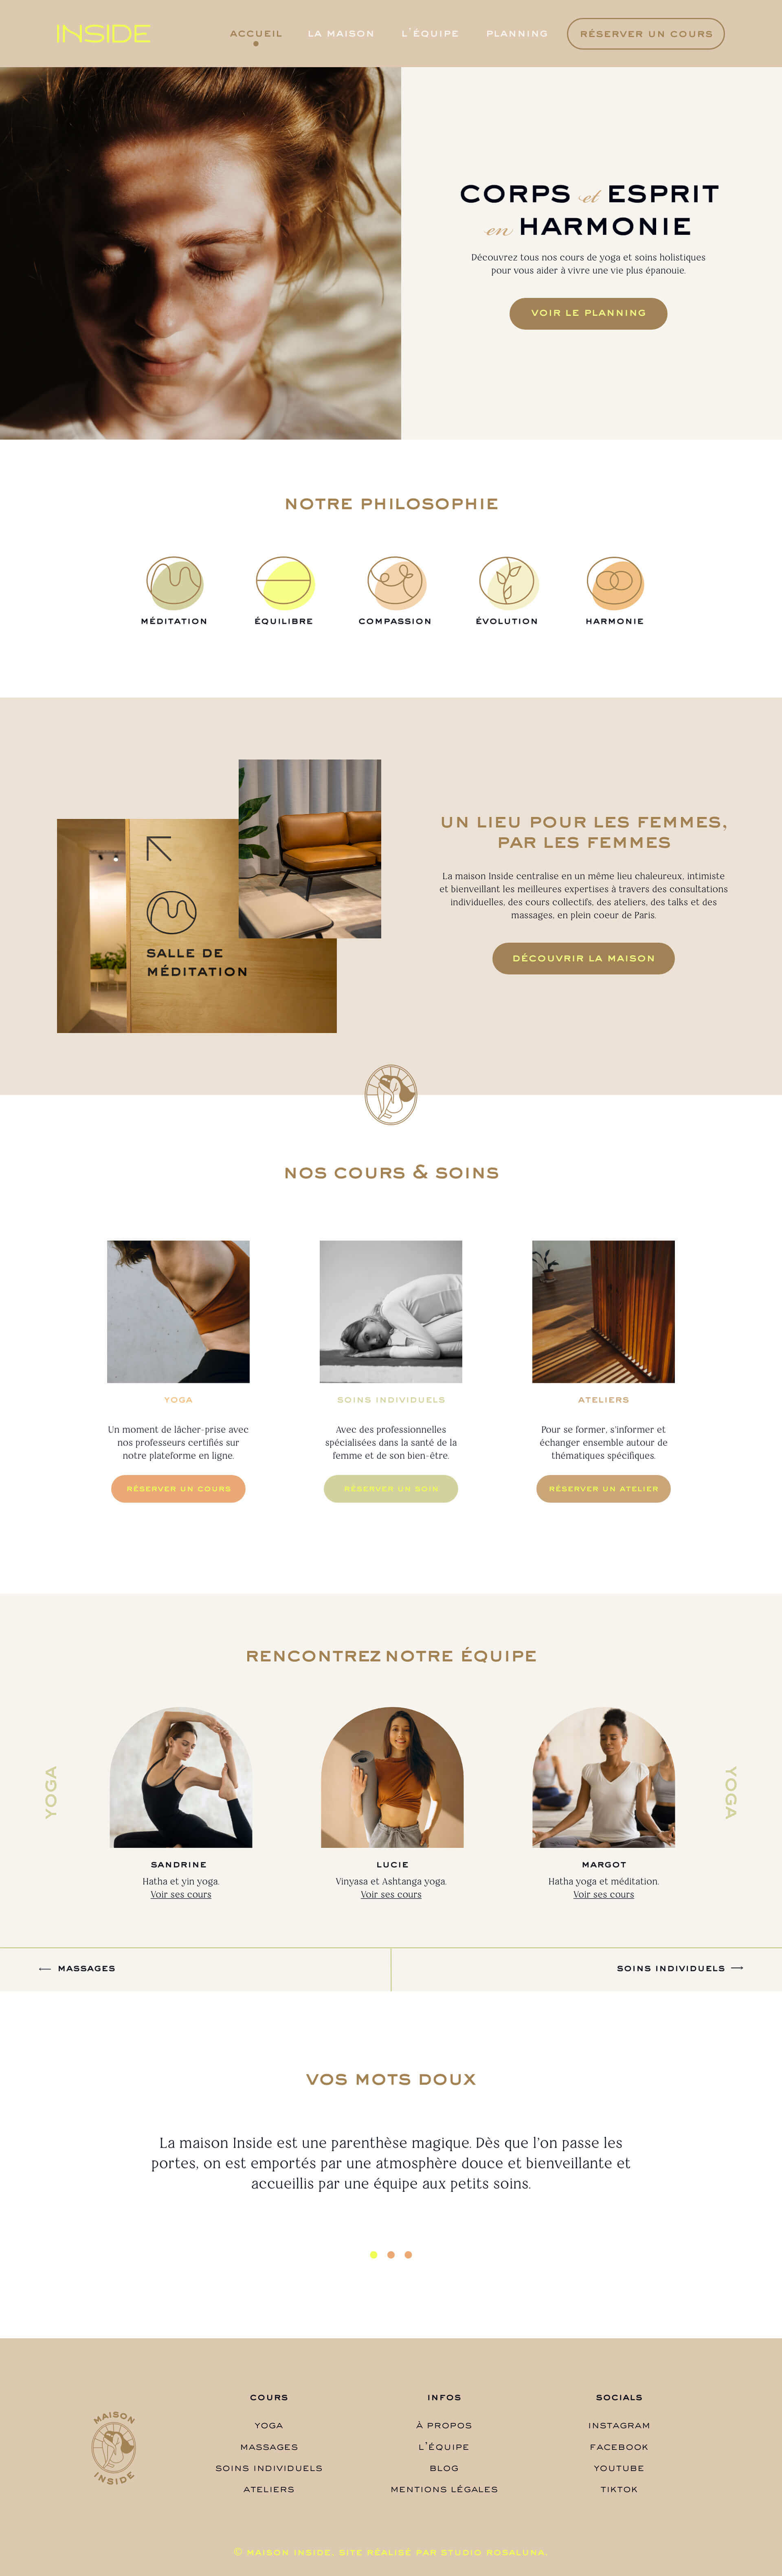 Preview image for web design and SEO project for Inside Yoga Studio